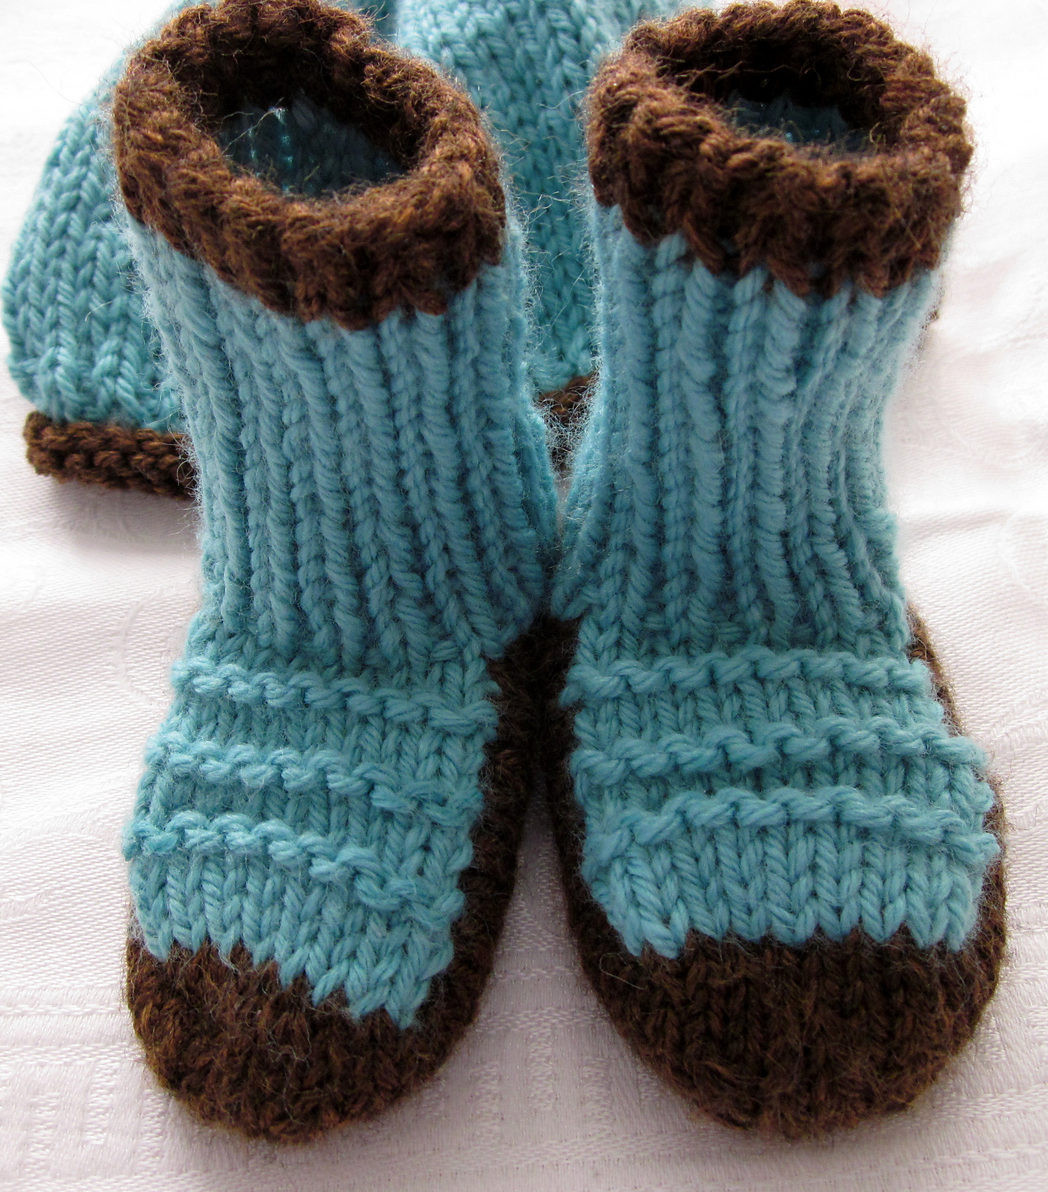 Booties Pattern Lovely Baby Bootie Knitting Patterns Of Luxury 48 Ideas Booties Pattern